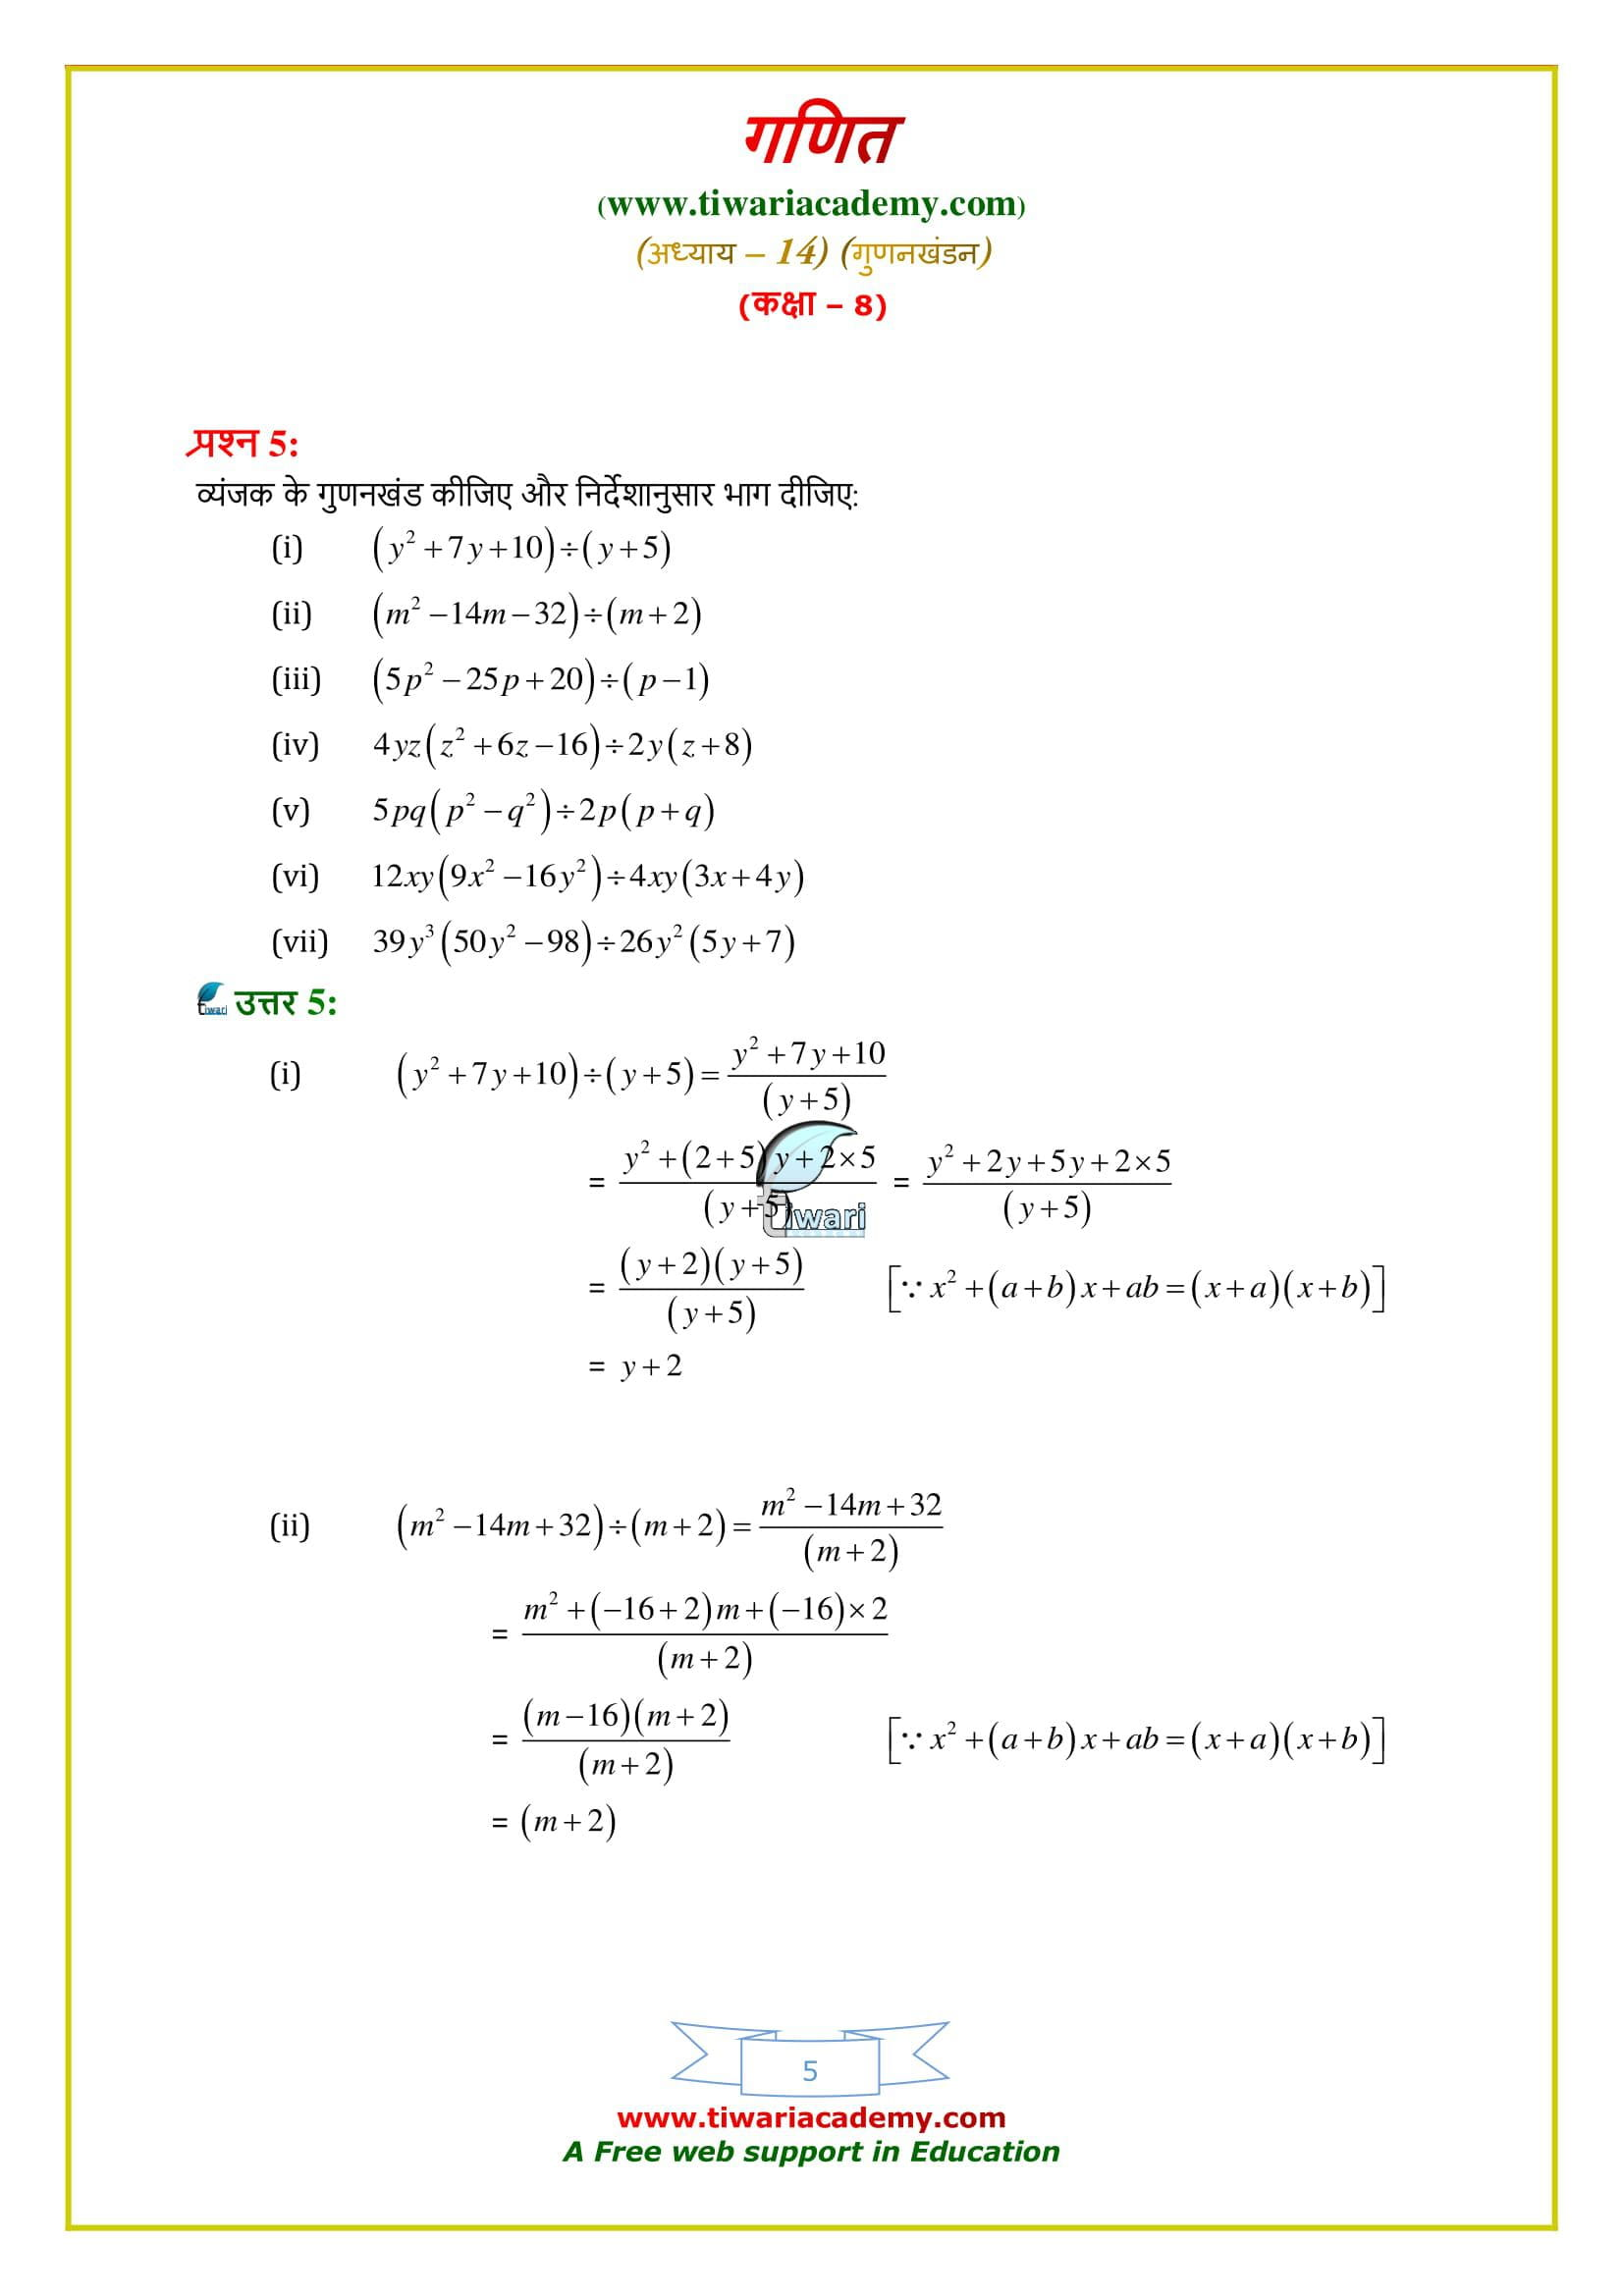 8 Maths Exercise 14.3 solutions in pdf format